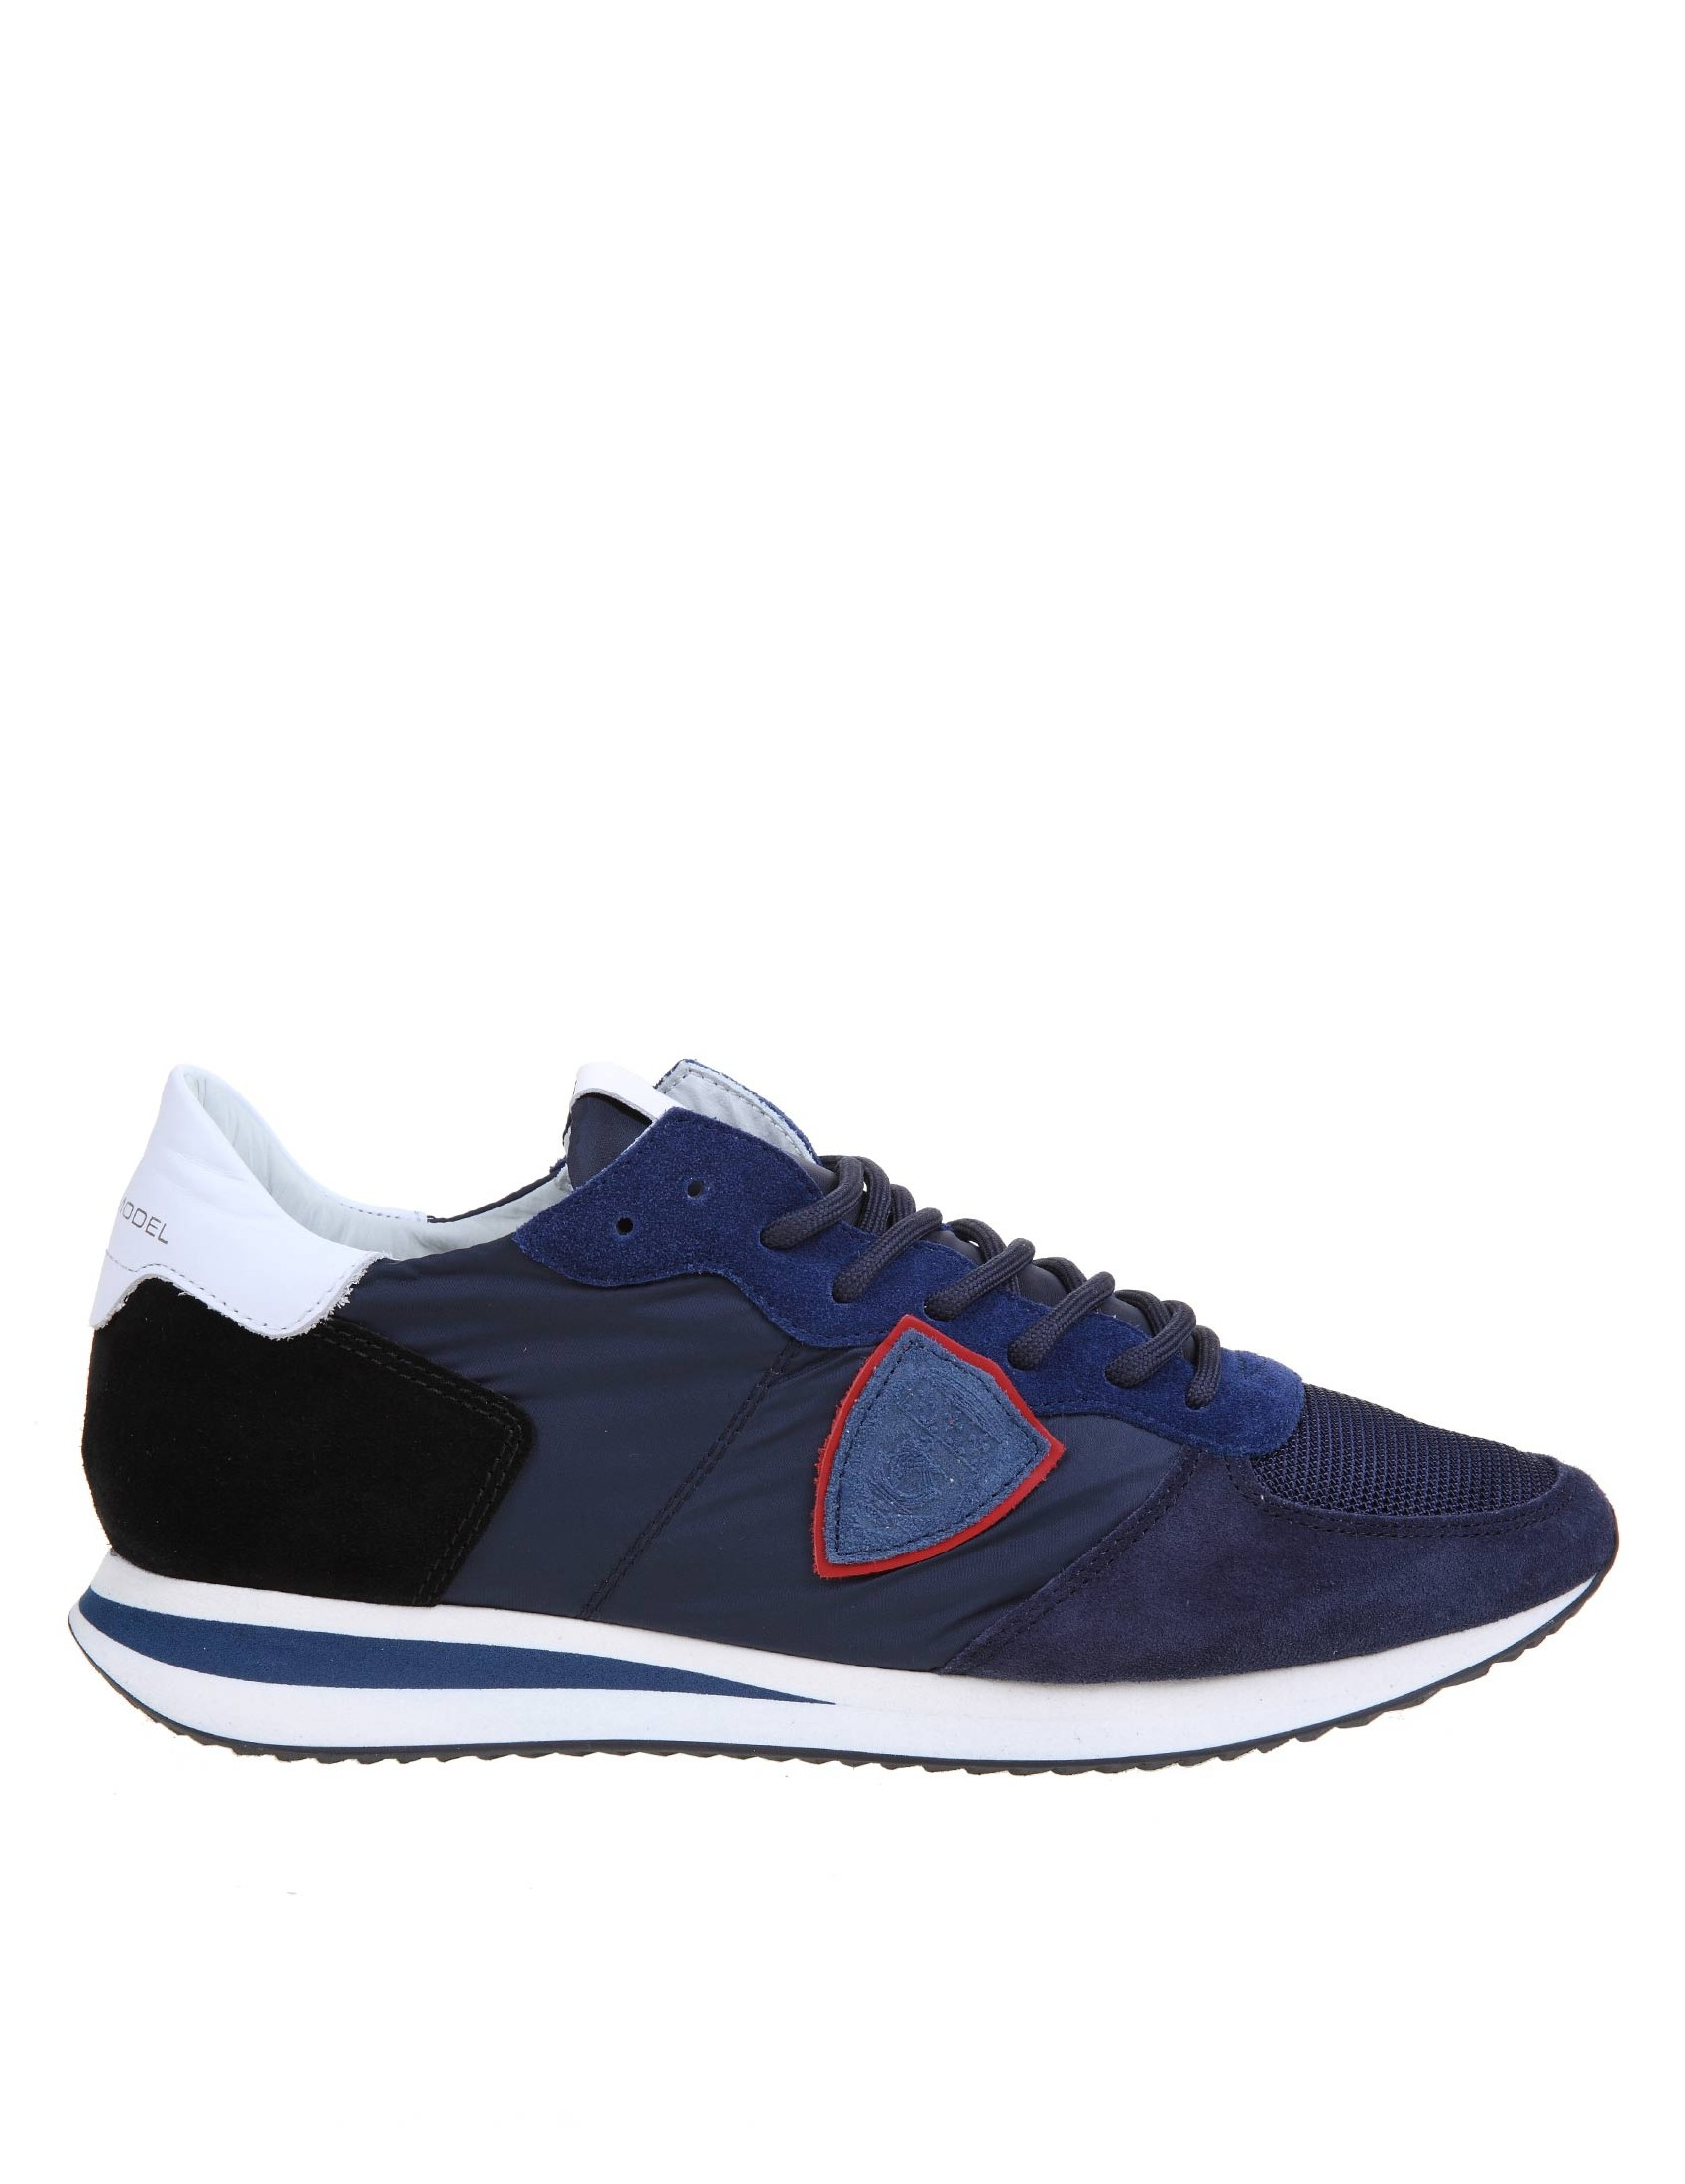 Philippe Model Suedes PHILIPPE MODEL TRPX SNEAKERS IN SUEDE AND NYLON